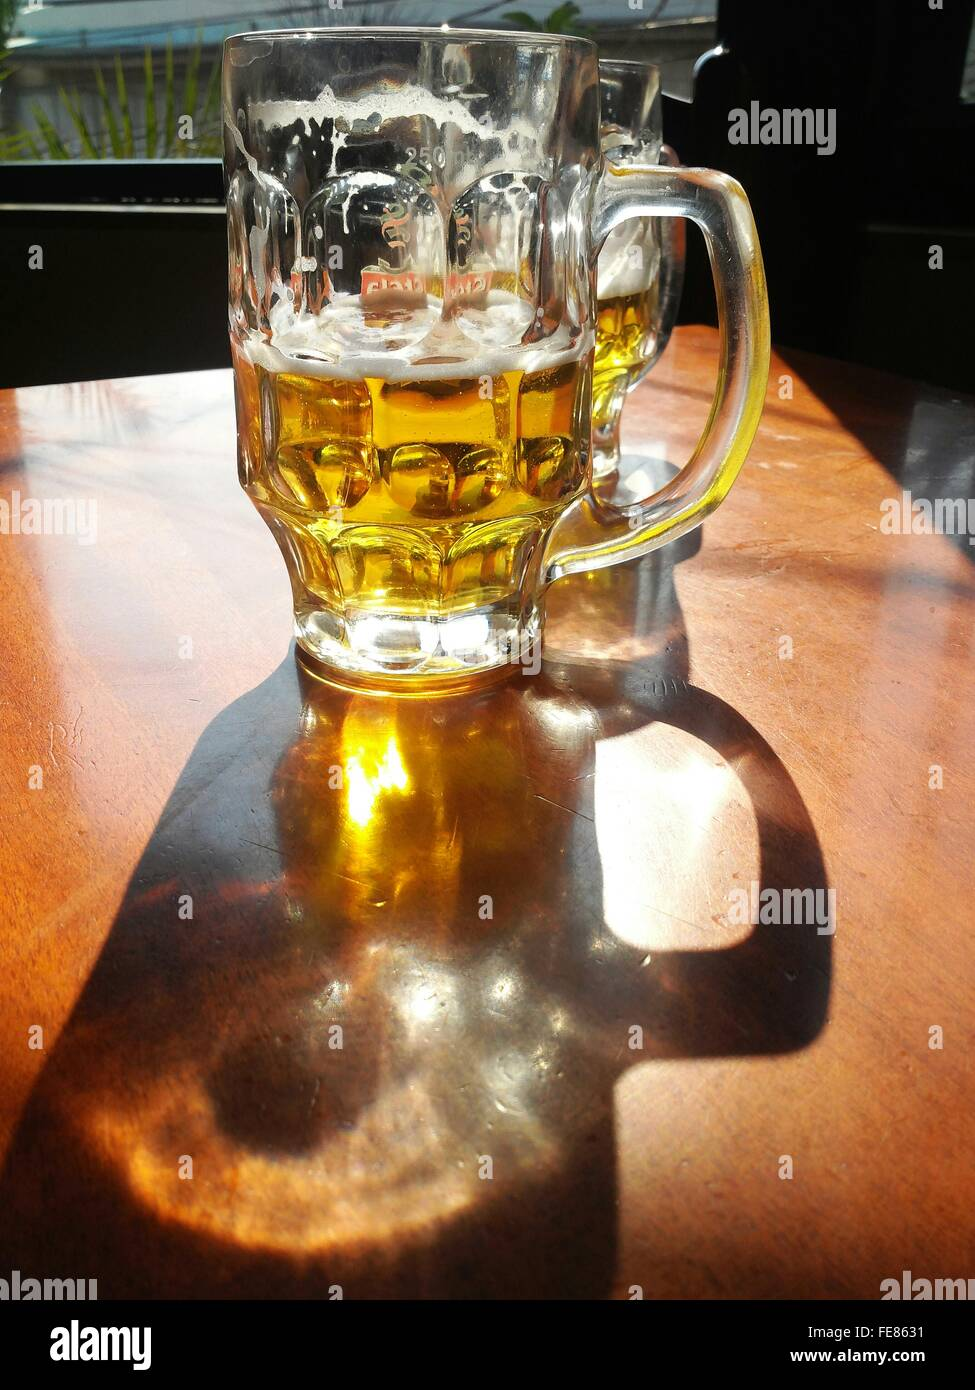 Beer Glasses Served On Table - Stock Image